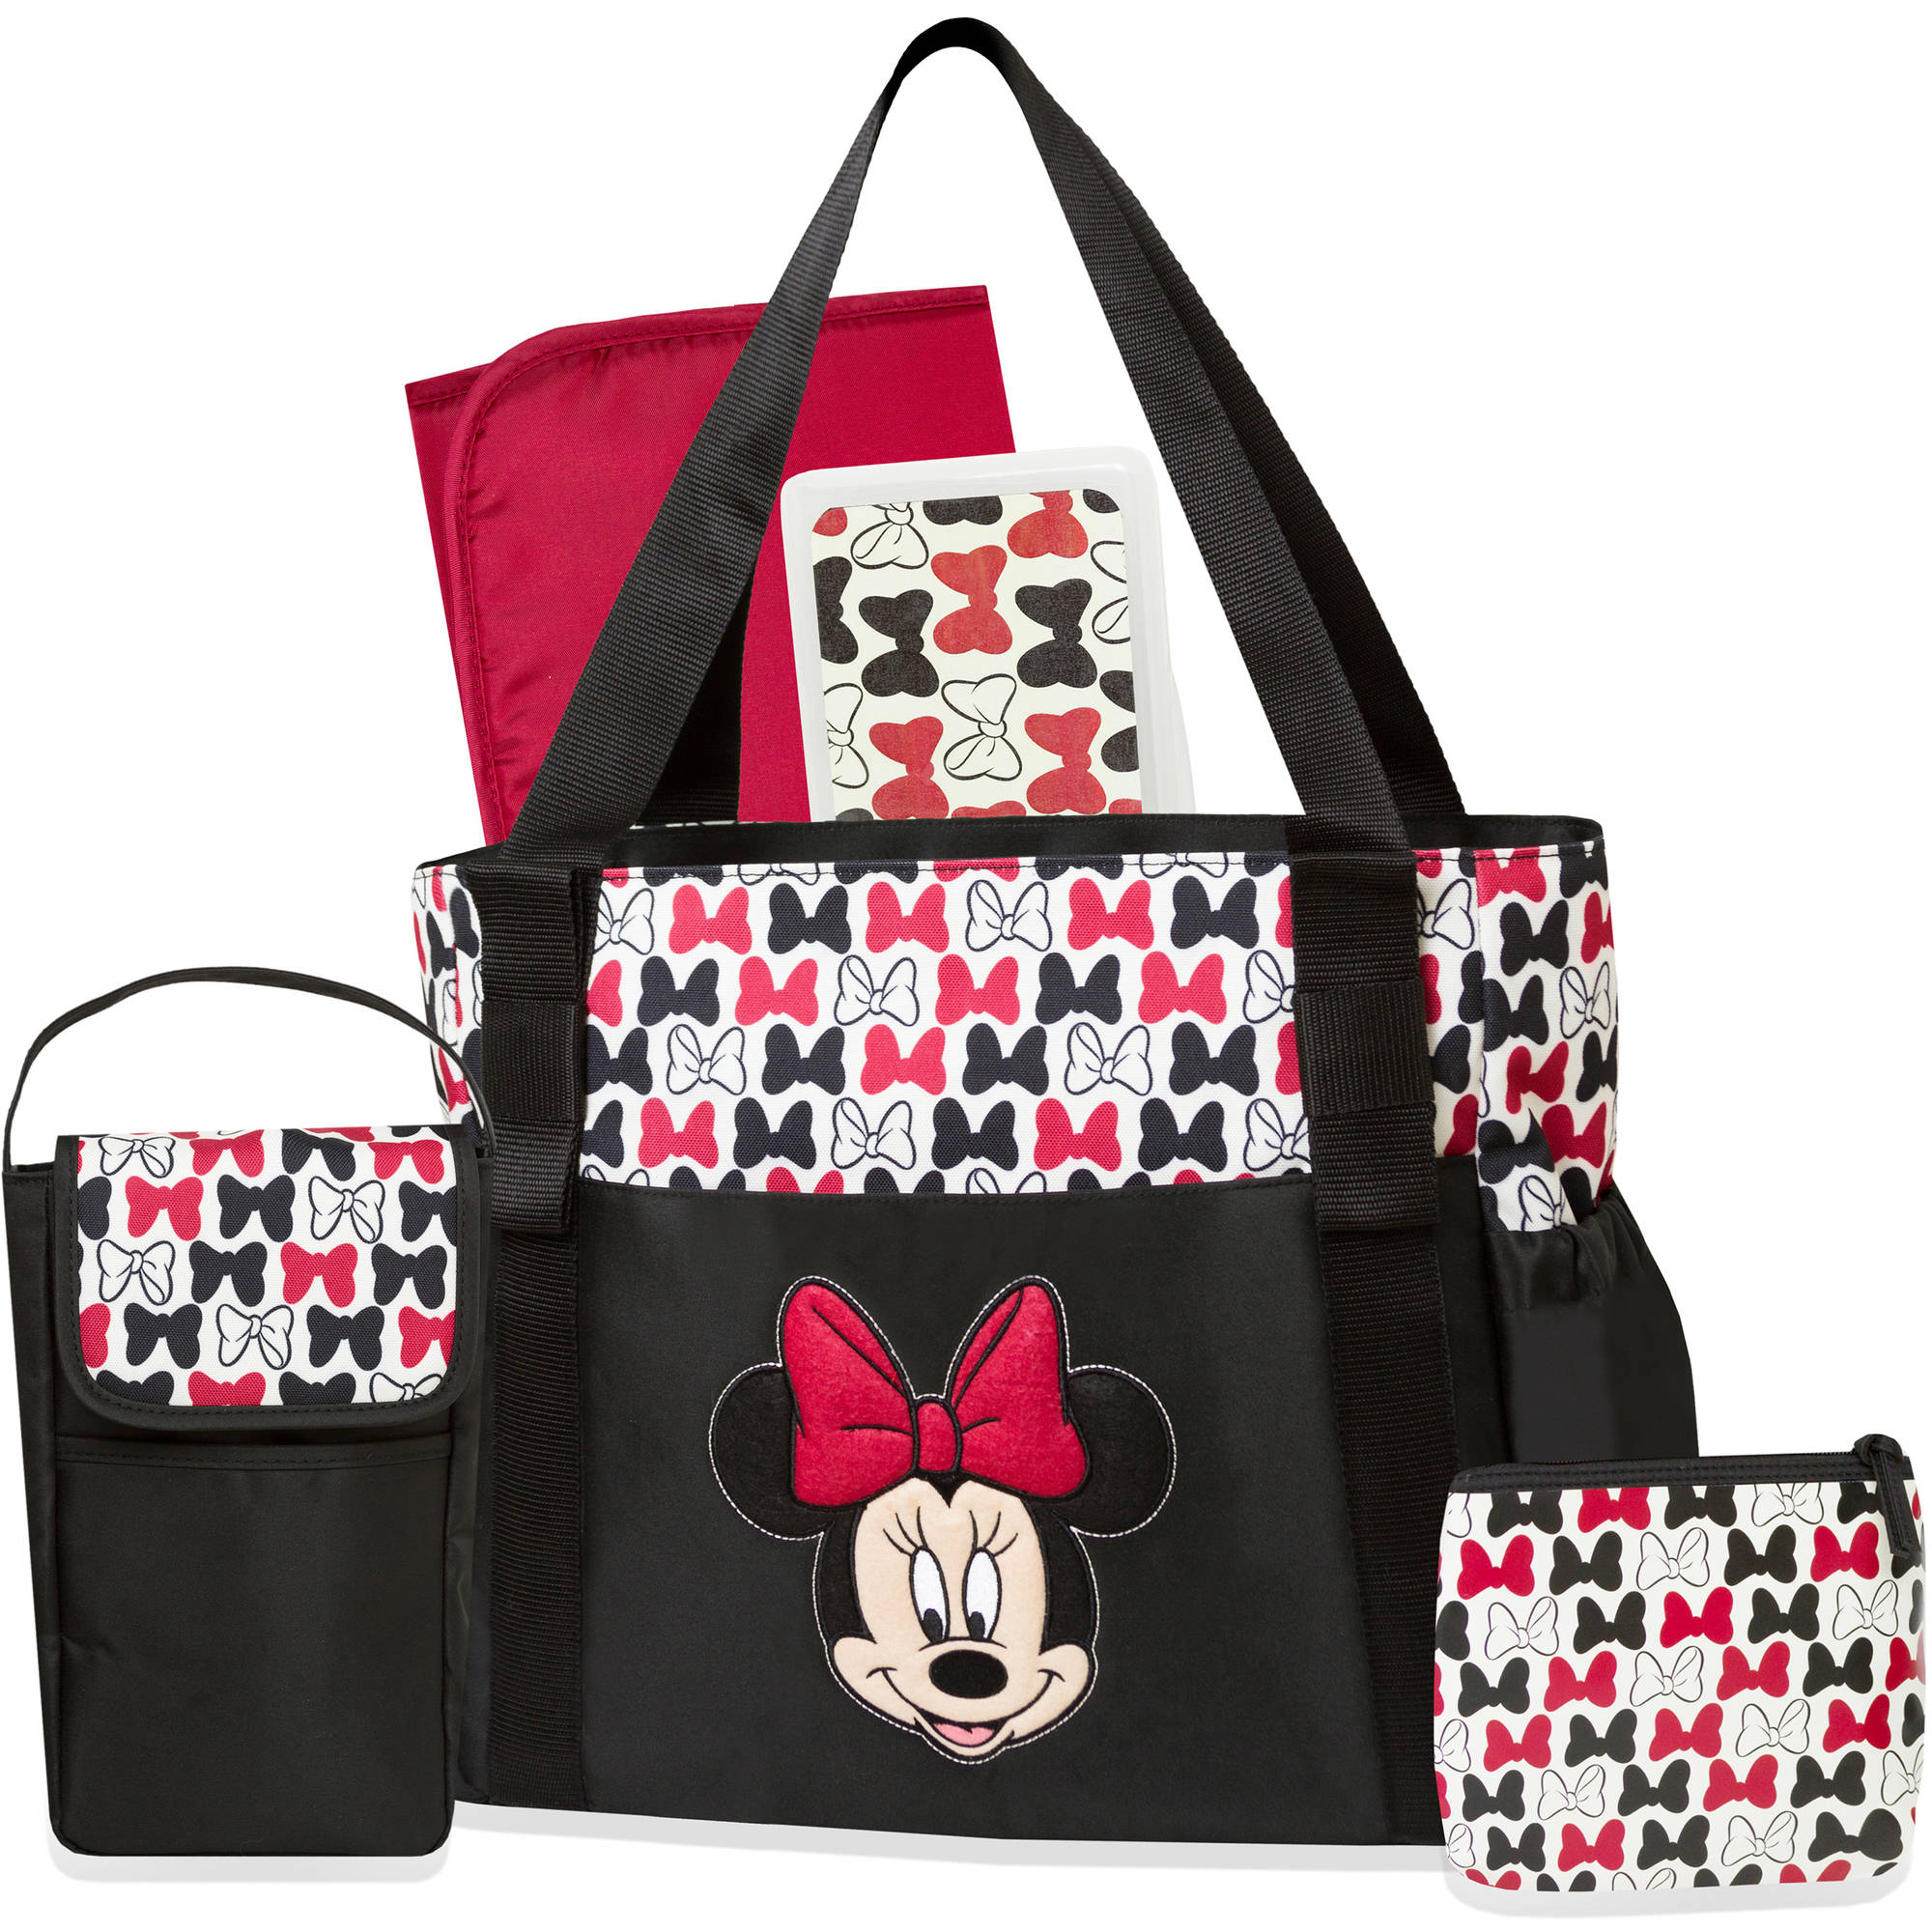 Disney Minnie Mouse Black Bow 5-in-1 Diaper Bag